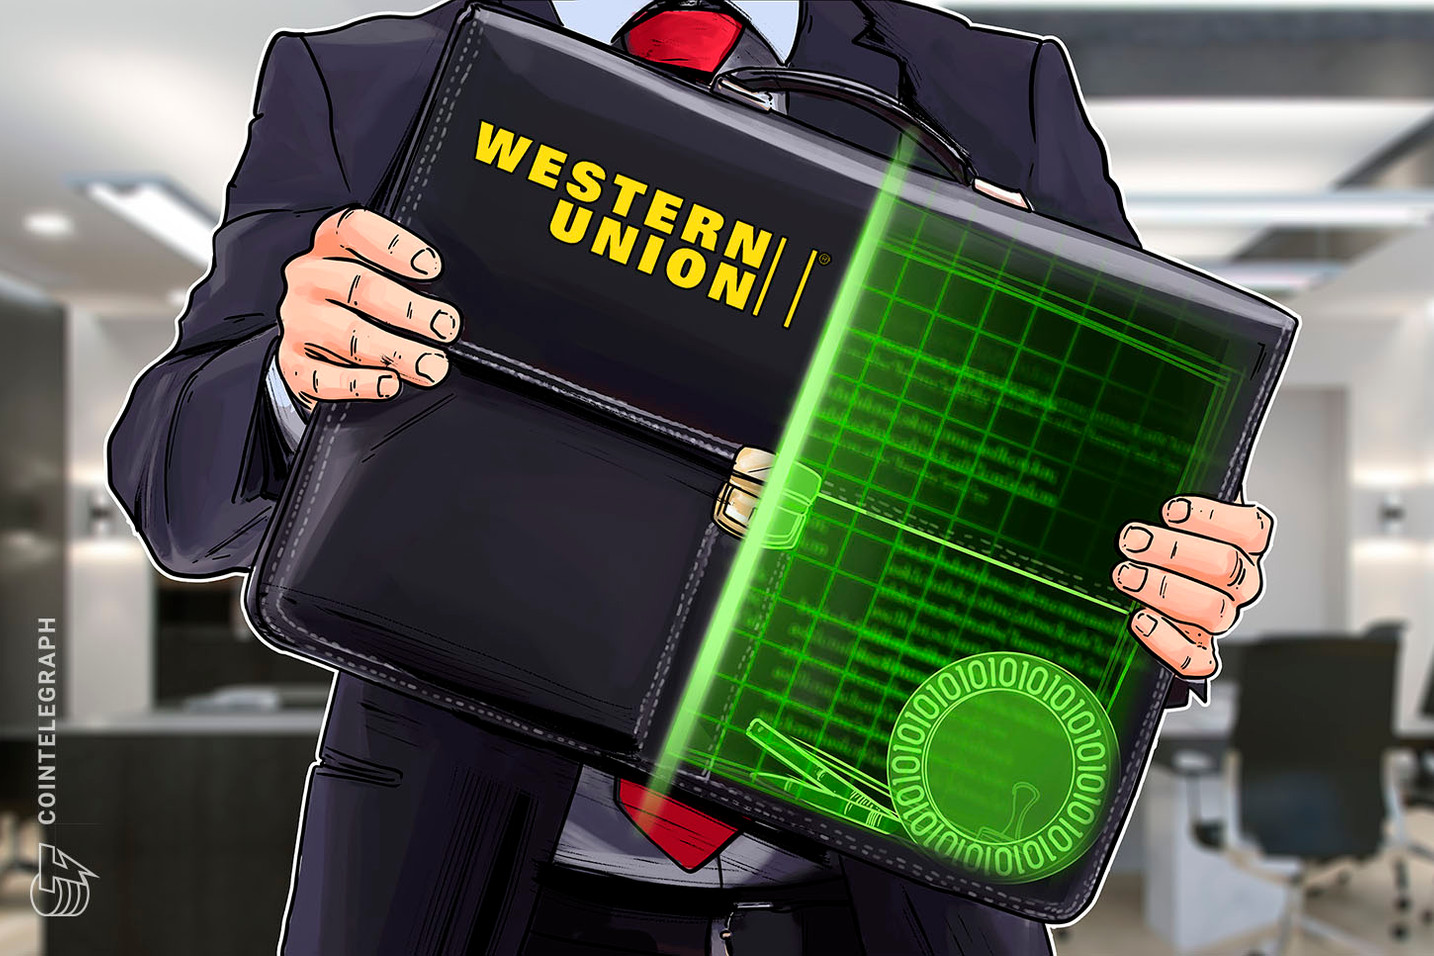 Western Union Considers Crypto, Partners with Ripple to Test Blockchain Payments